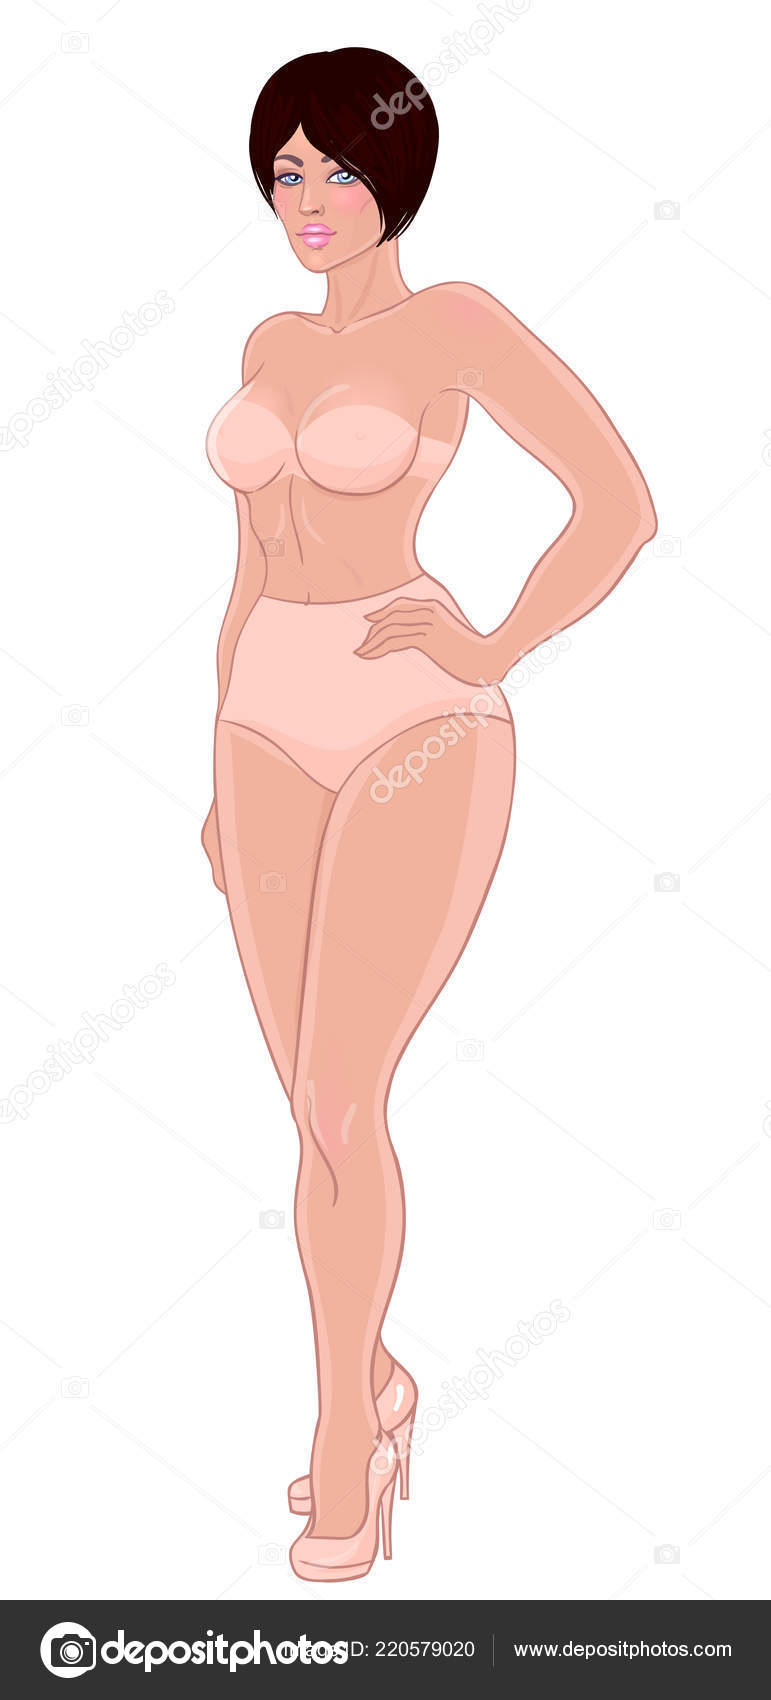 5d3cfa34e2f Curvy girl in beige underwear isolated on white. Vector illustration. Plus  size model in lingerie or swimsuit and high heels. Body positive concept.